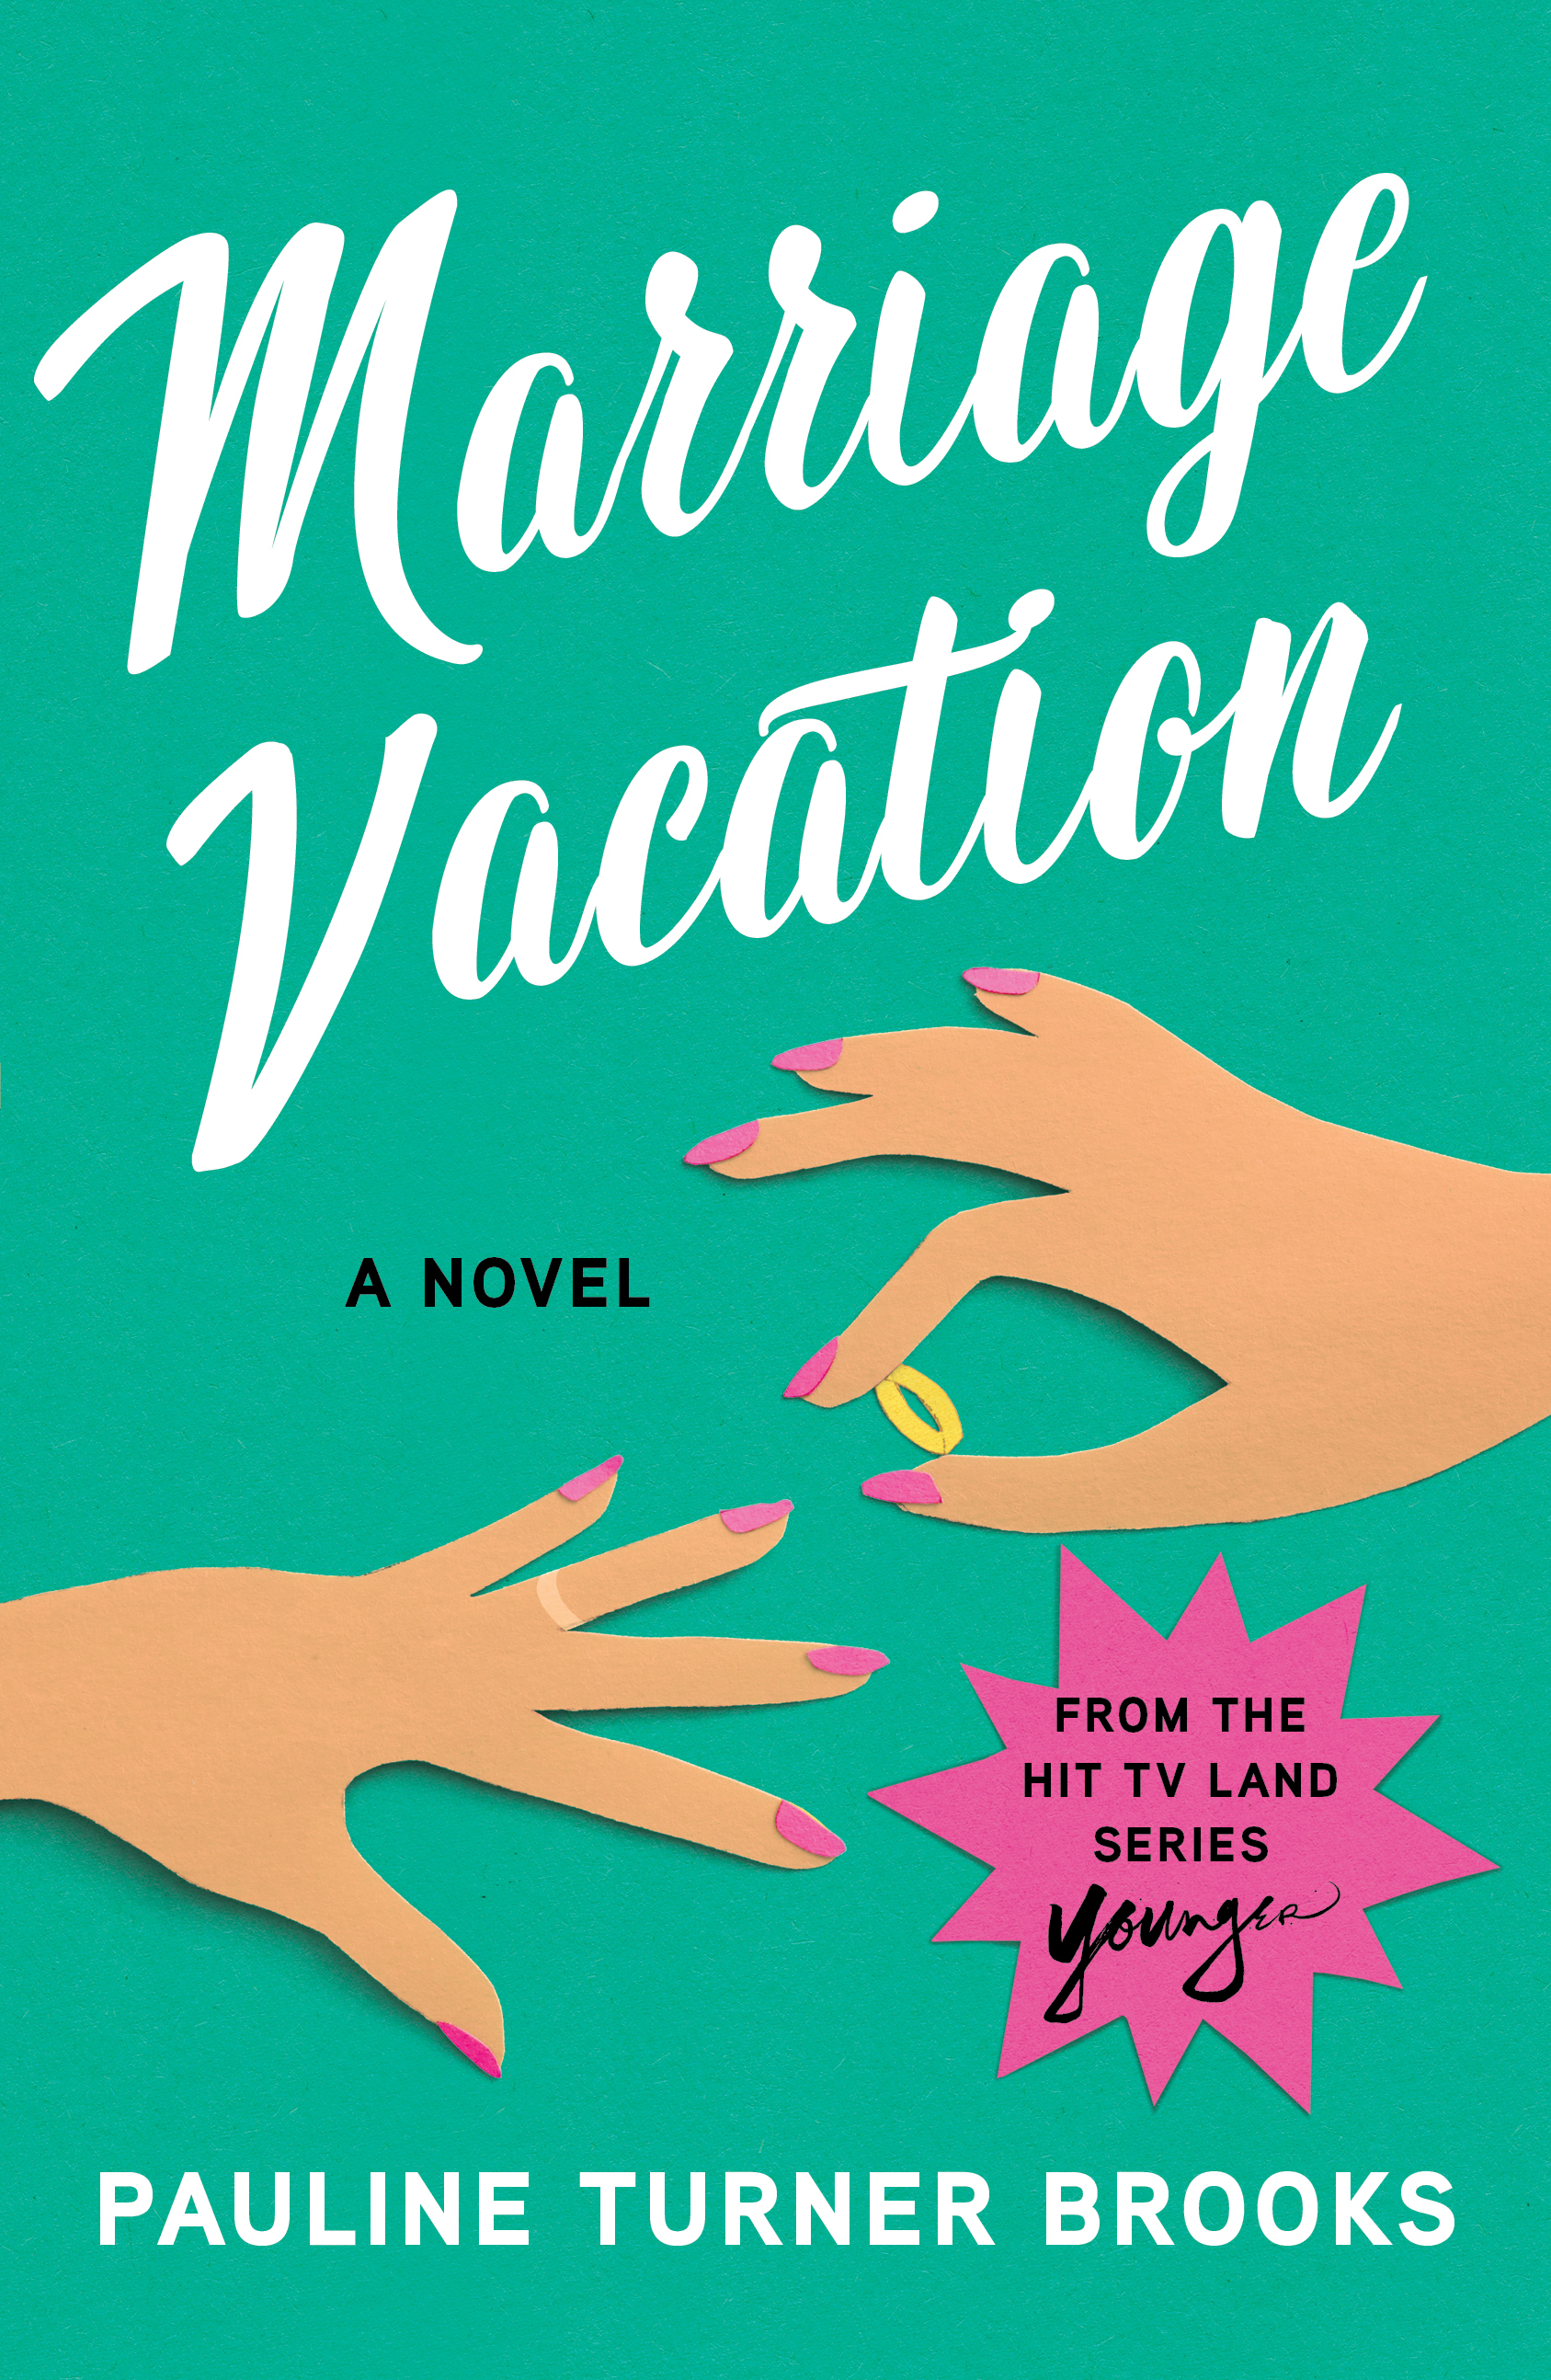 Marriage Vacation, by Pauline Turner Brooks{ } (Image: Courtesy{ }Simon & Schuster){ }